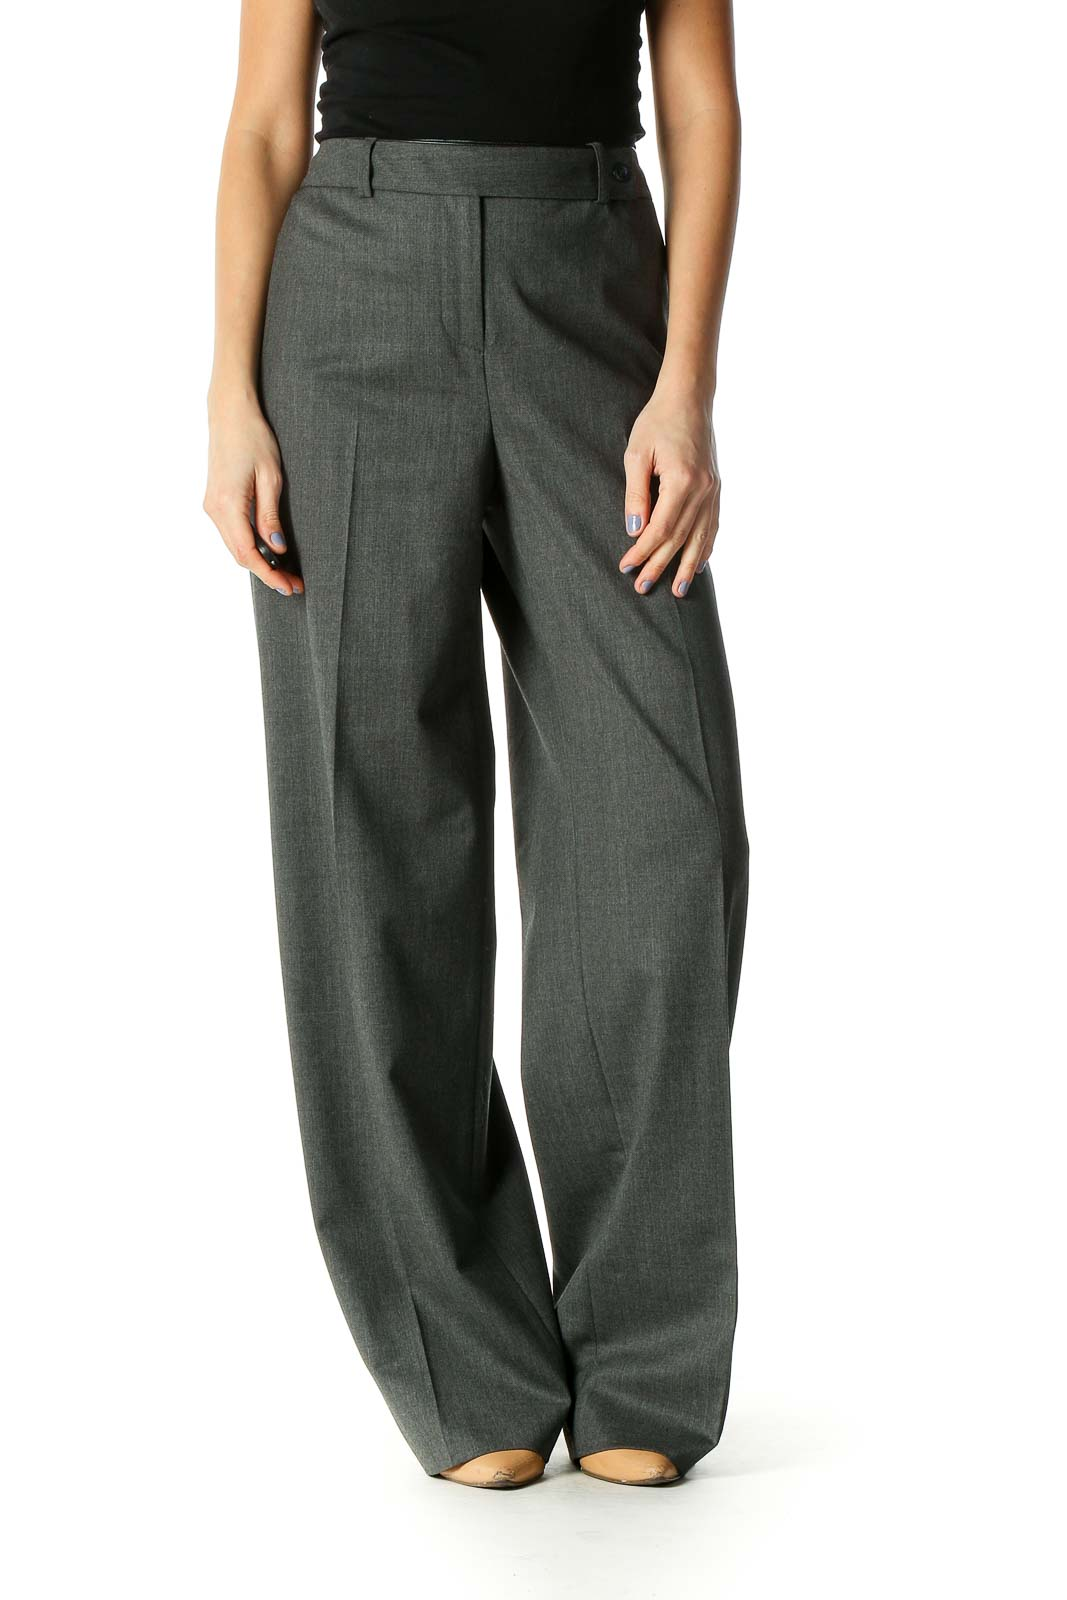 Gray Solid Classic Trousers Front